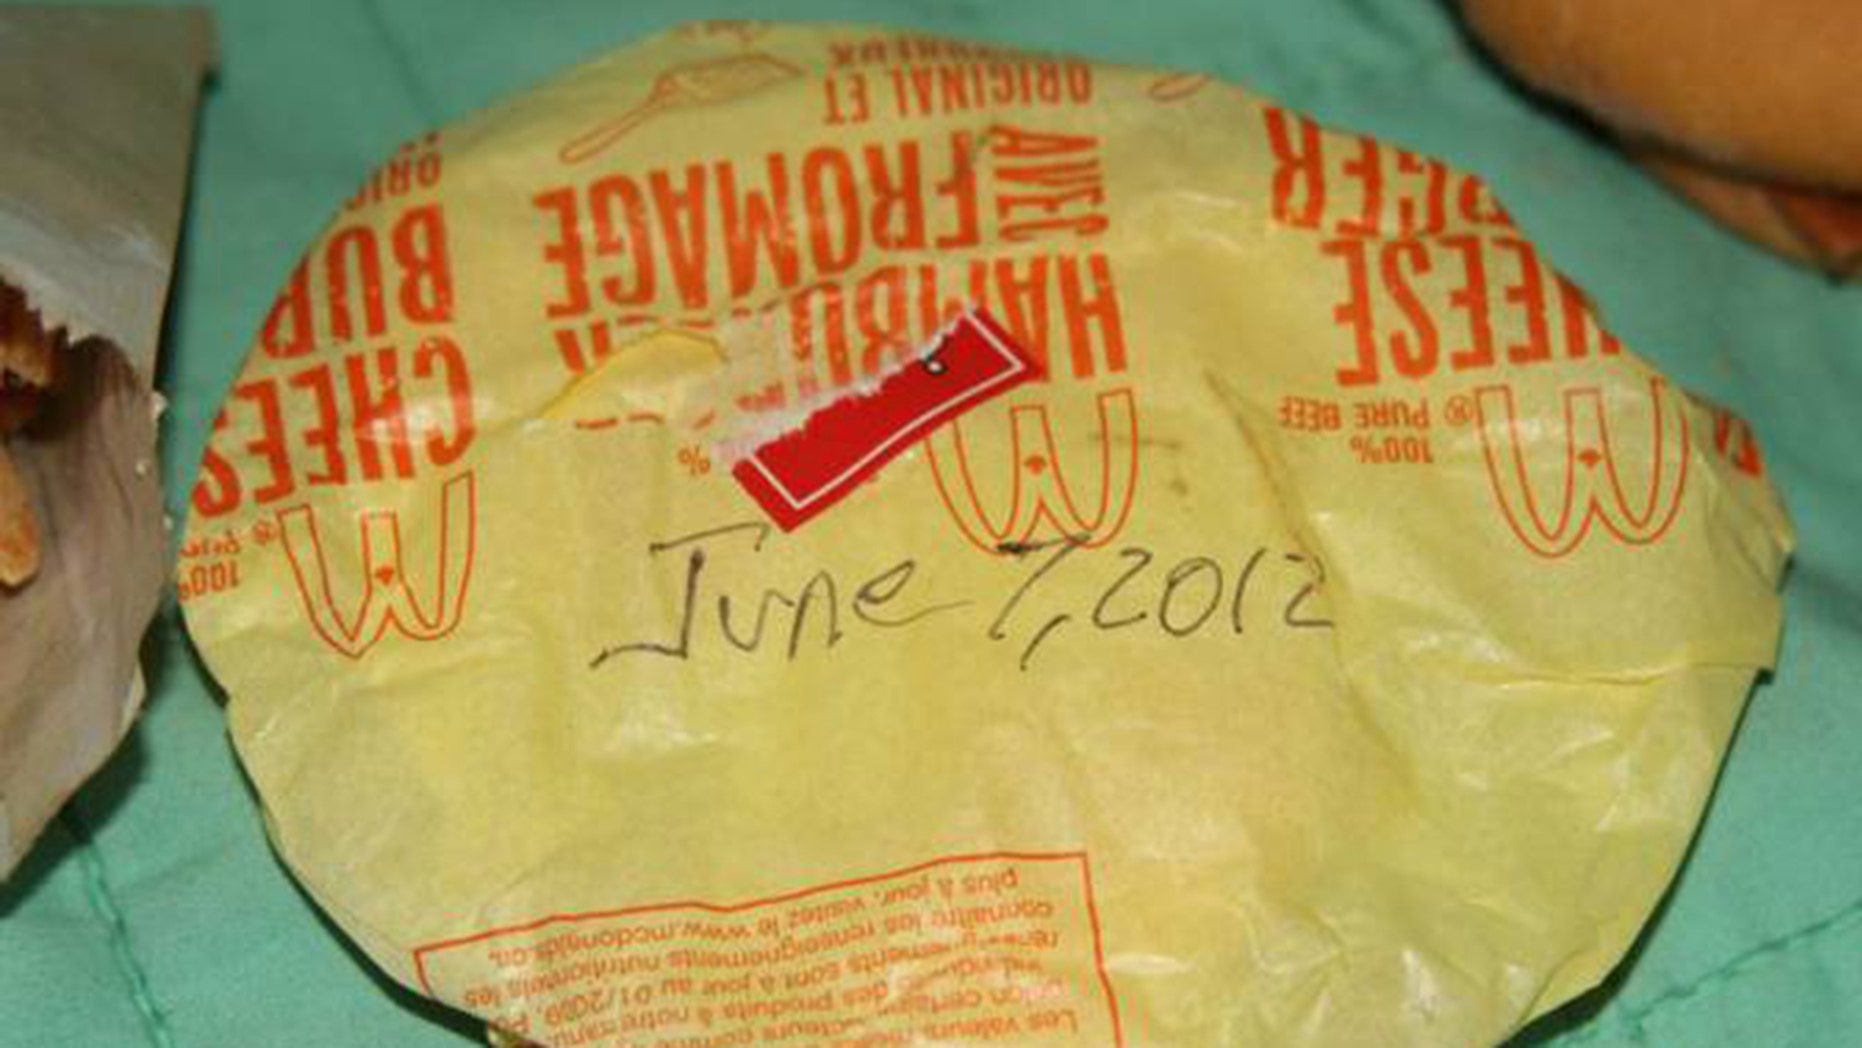 A man's ancient McDonald's meal was pulled from auction site eBay for violating food policy.